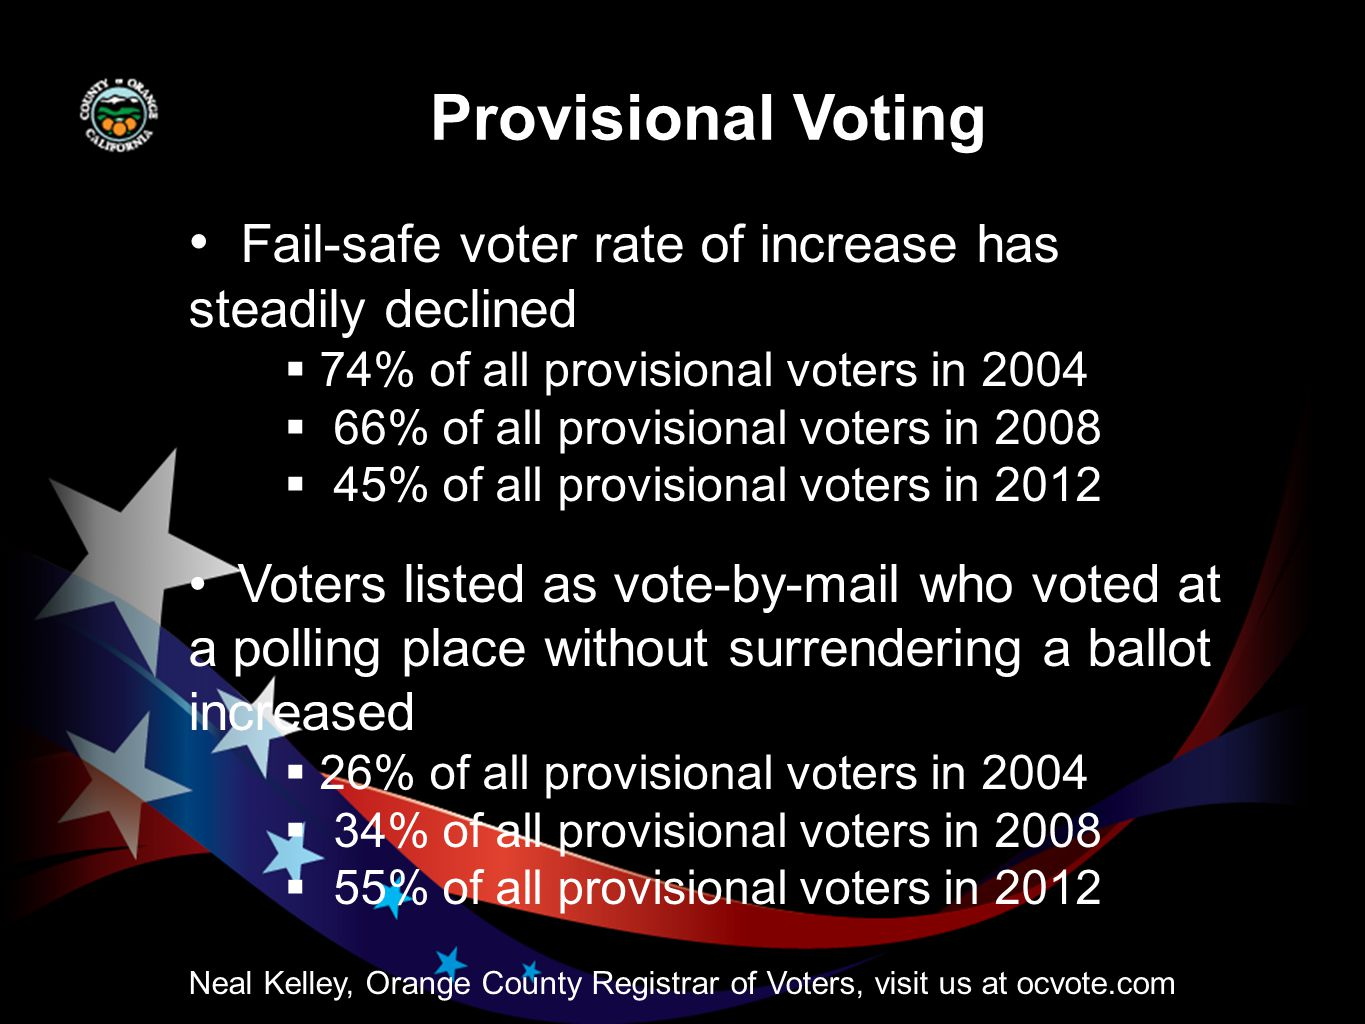 Neal Kelley, Orange County Registrar of Voters, visit us at ocvote.com Provisional Voting Fail-safe voter rate of increase has steadily declined  74% of all provisional voters in 2004  66% of all provisional voters in 2008  45% of all provisional voters in 2012 Voters listed as vote-by-mail who voted at a polling place without surrendering a ballot increased  26% of all provisional voters in 2004  34% of all provisional voters in 2008  55% of all provisional voters in 2012